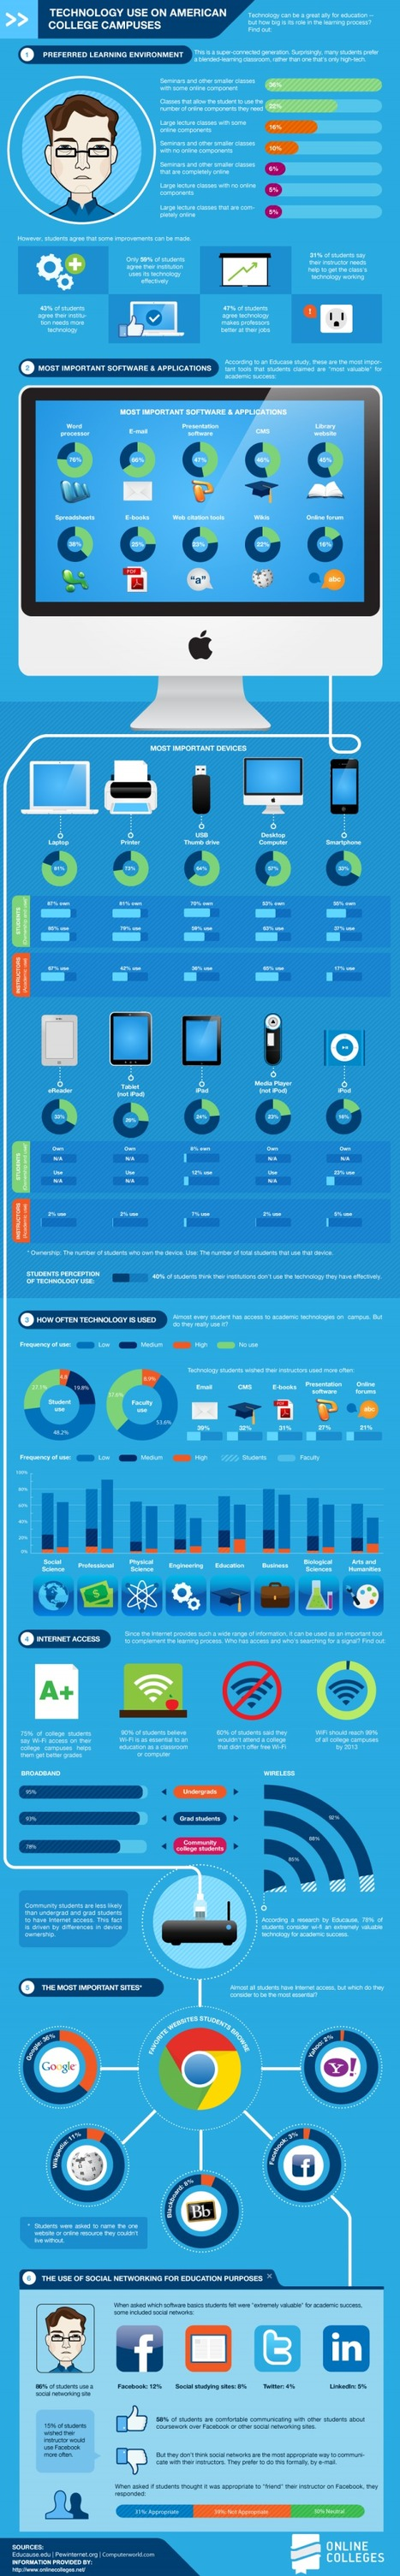 50 Surprising Facts About Technology Usage In College | Edudemic | Innovations in e-Learning | Scoop.it